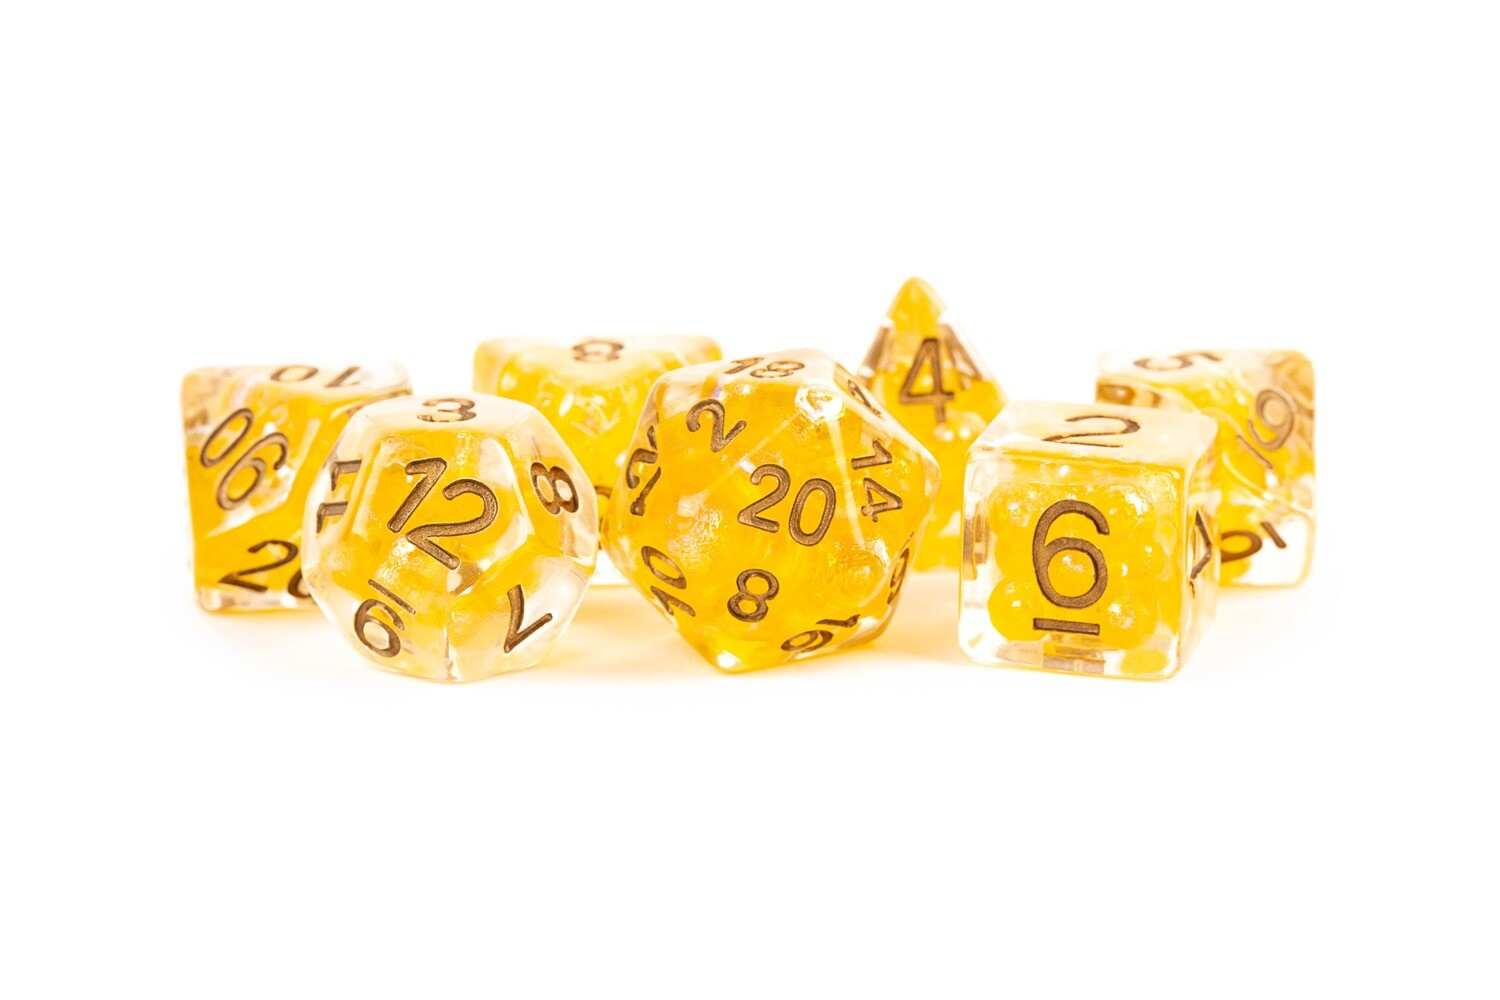 Pearl Dice Citrine with Copper Numbers 16mm Resin Poly Dice Set Tabletop RPG CCG Board Games Counter Token Markers Decision Makers Roll